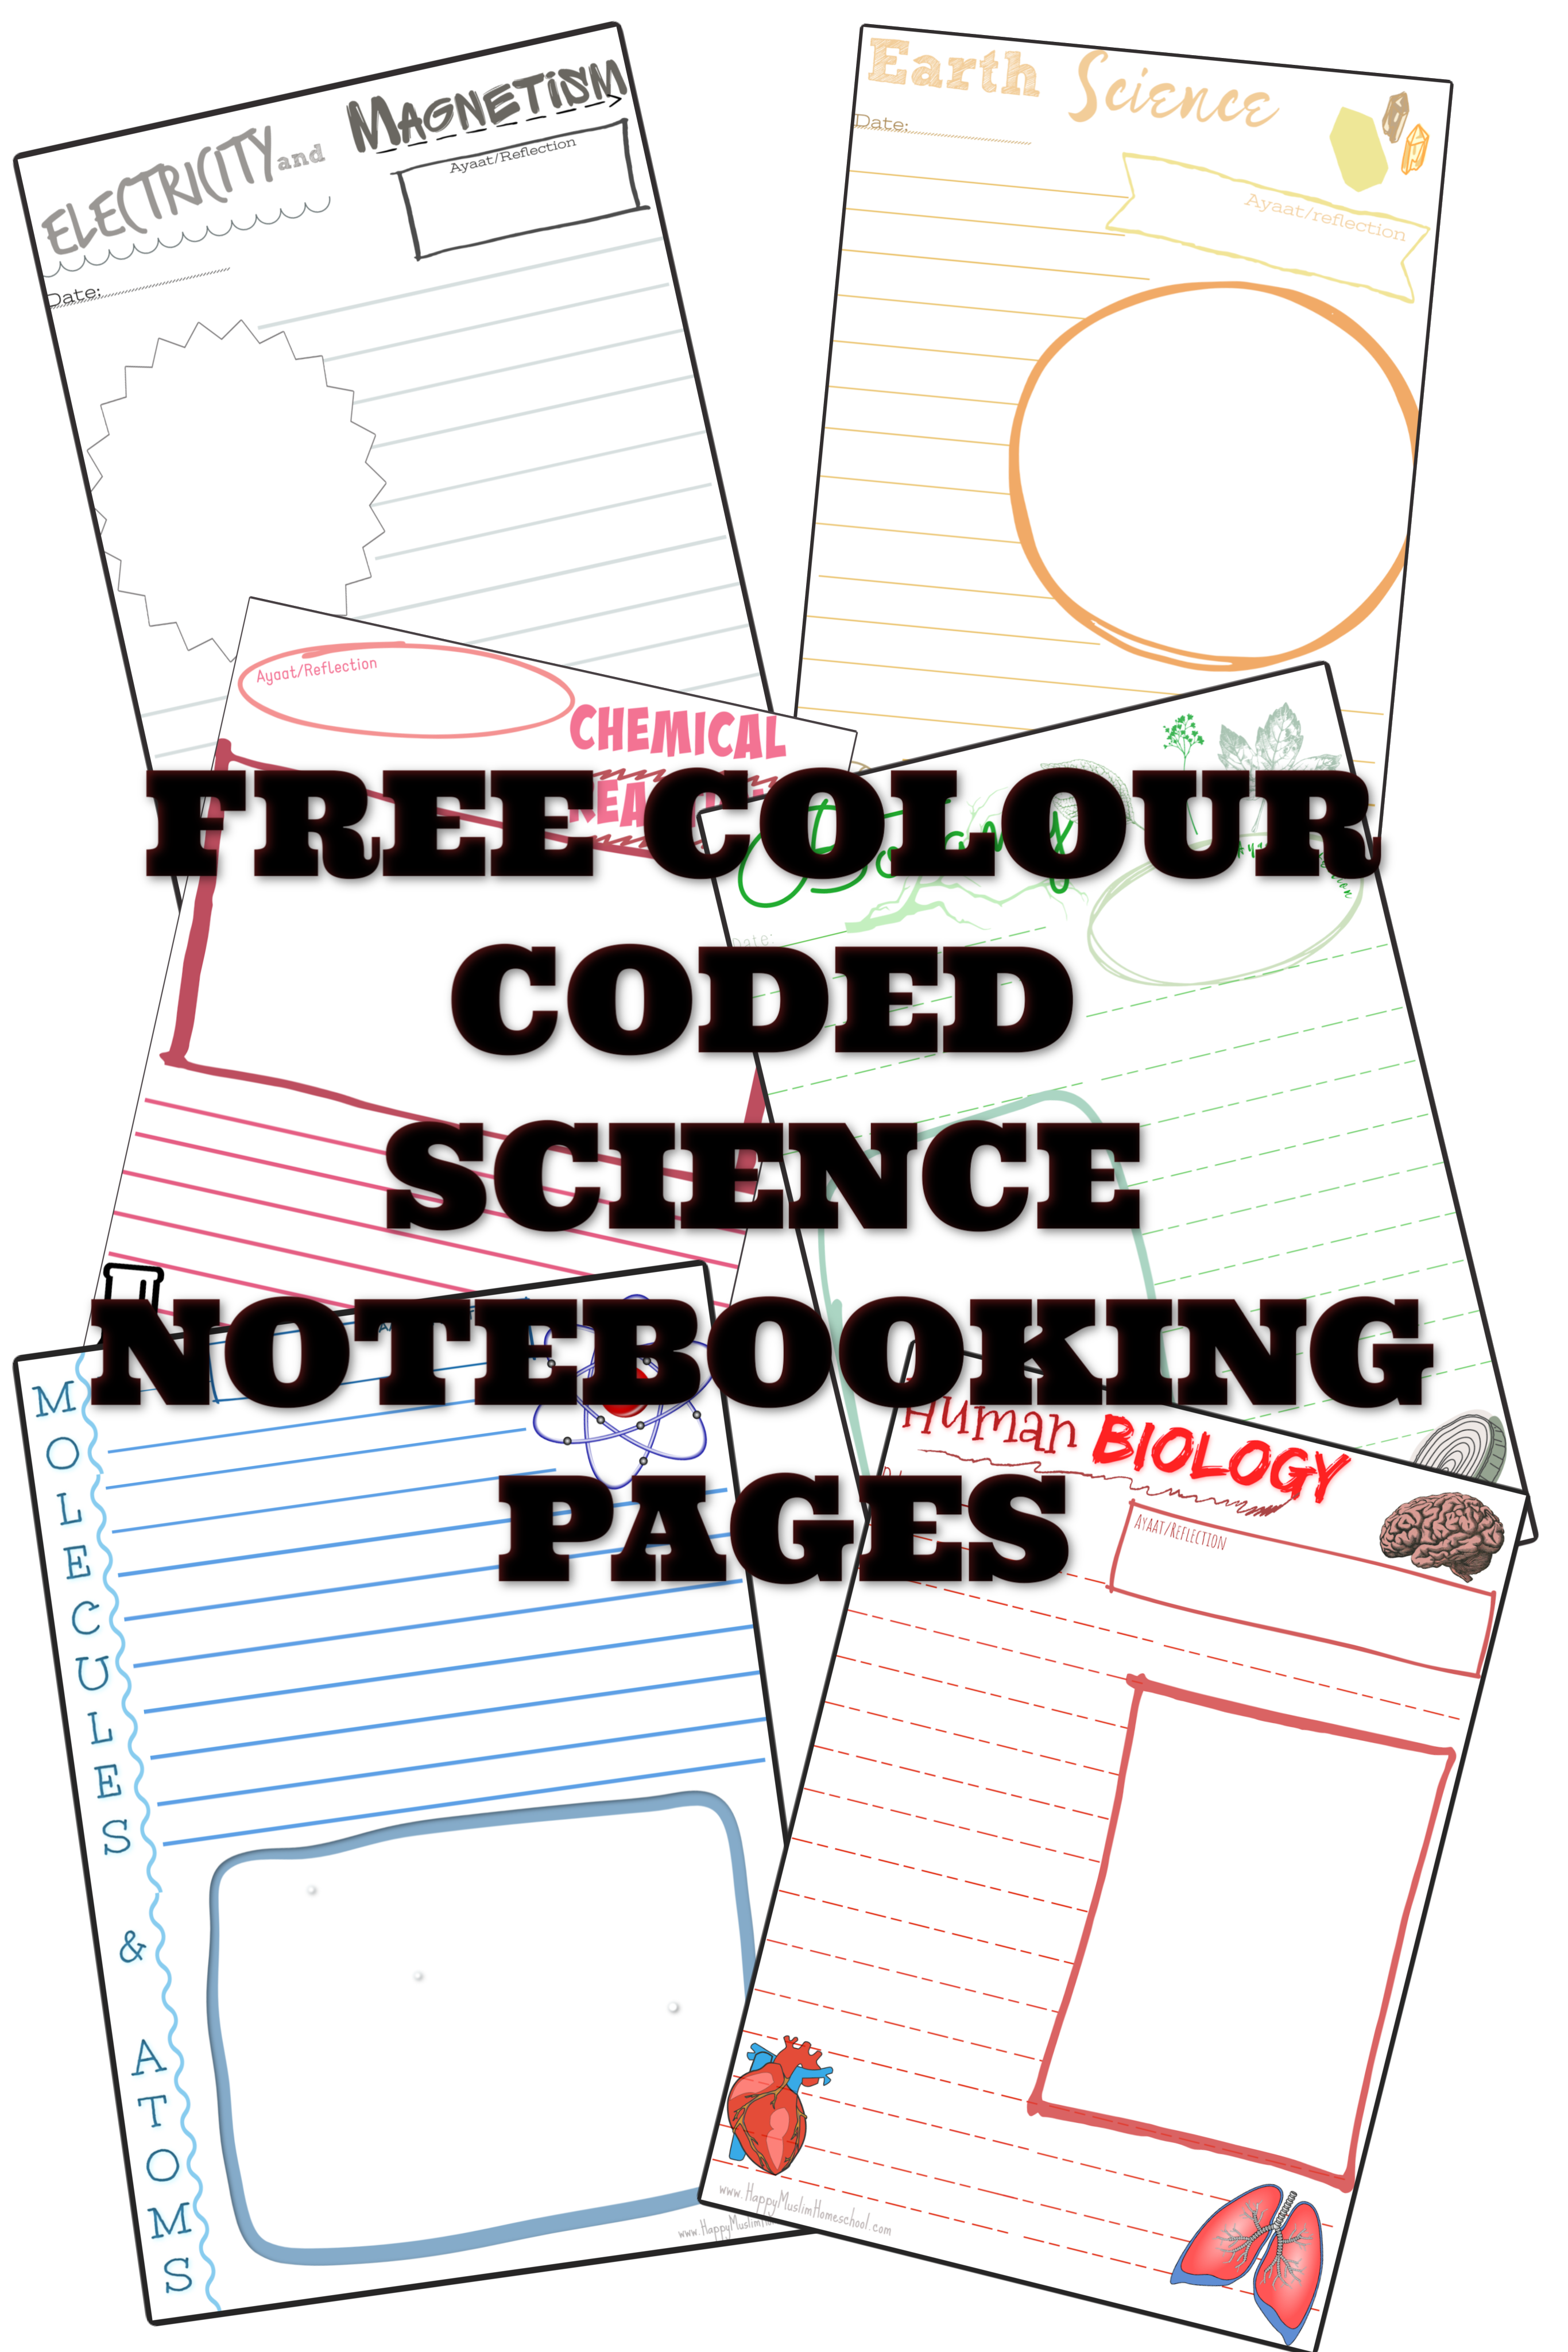 Science lapbooking pages.png